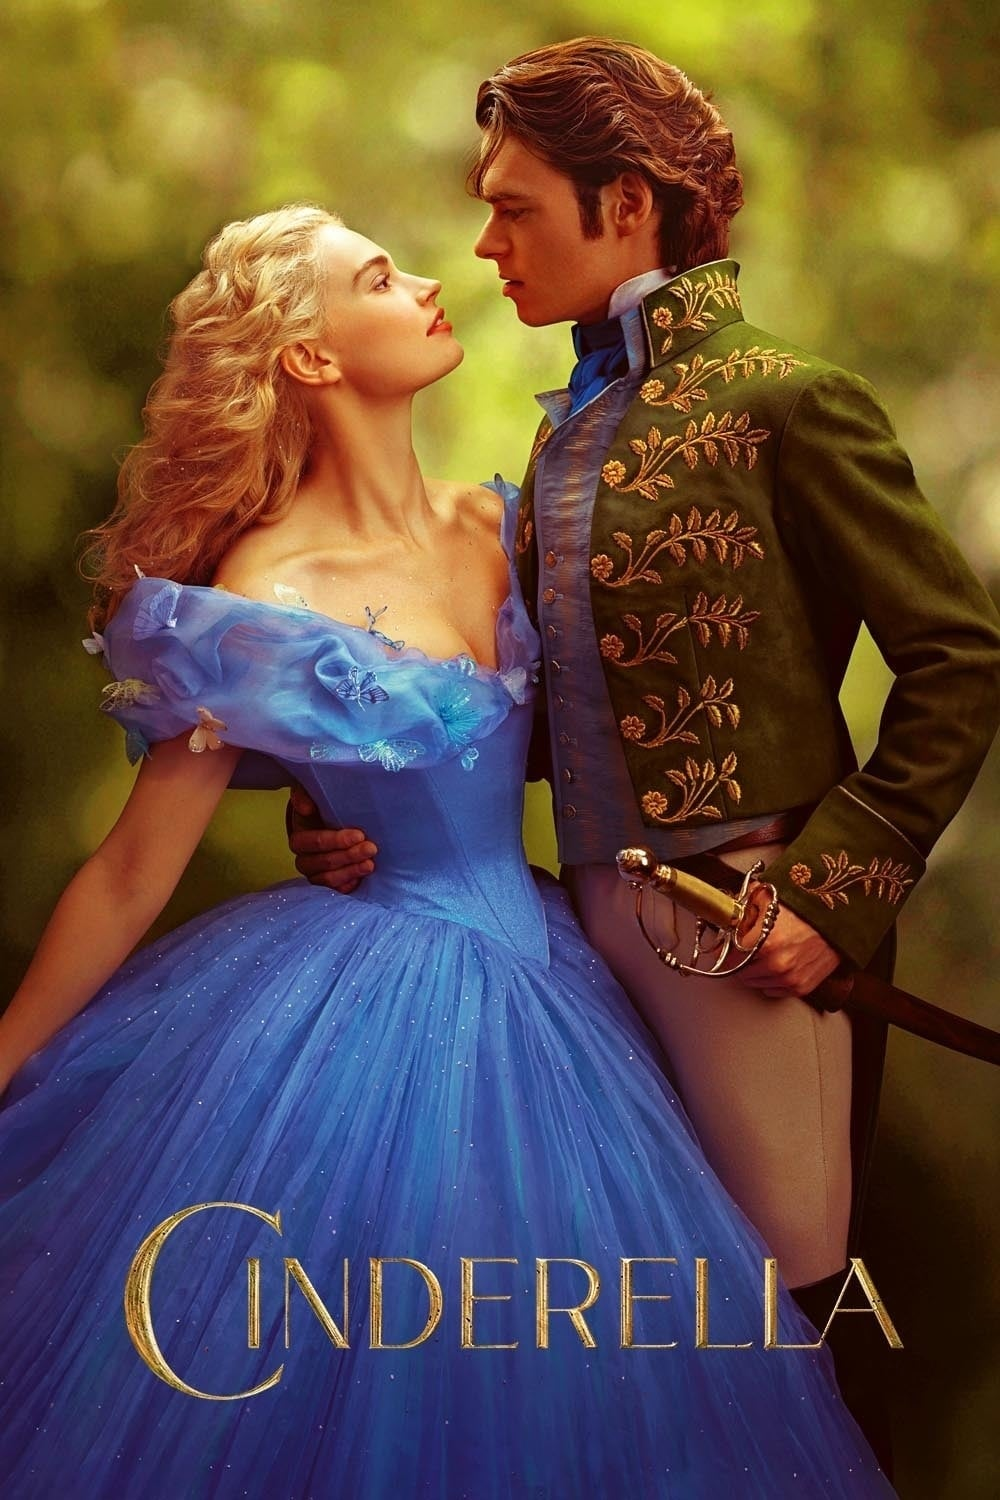 Cinderella Film Deutsch Ganzer Film